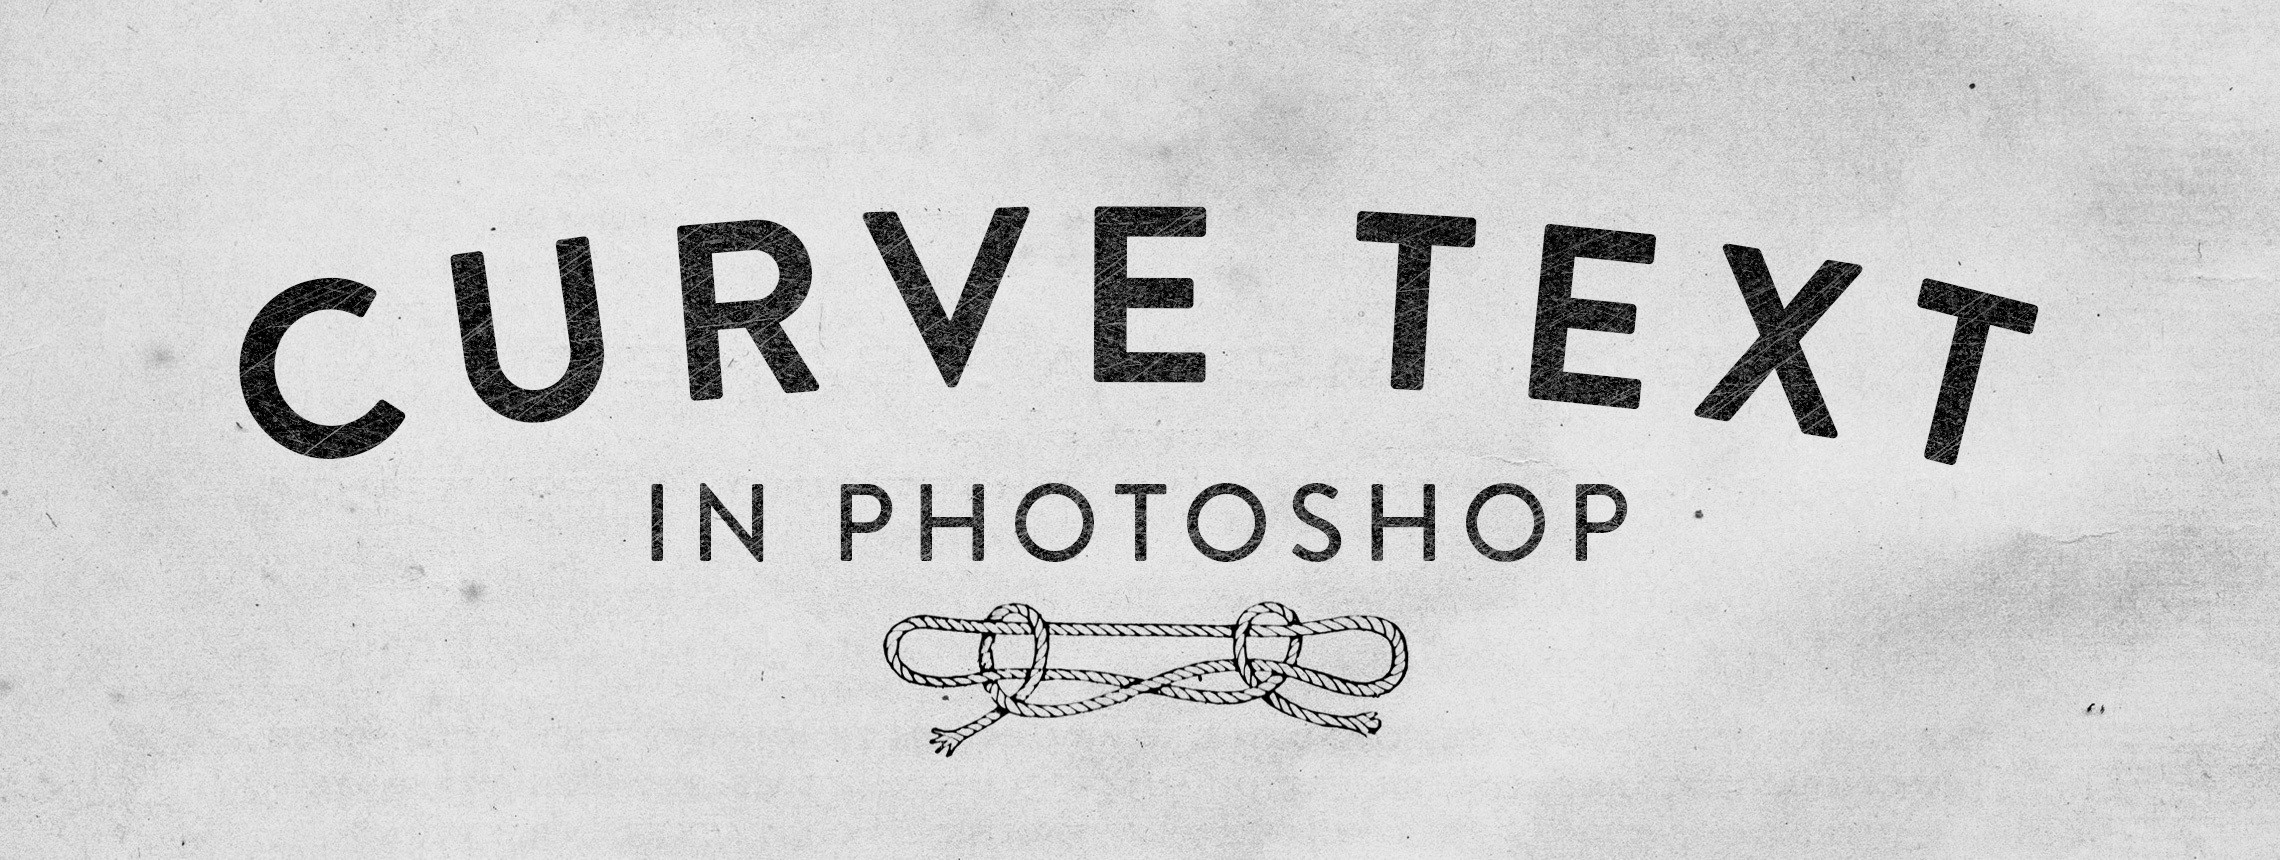 Three Ways to Curve Text in Photoshop